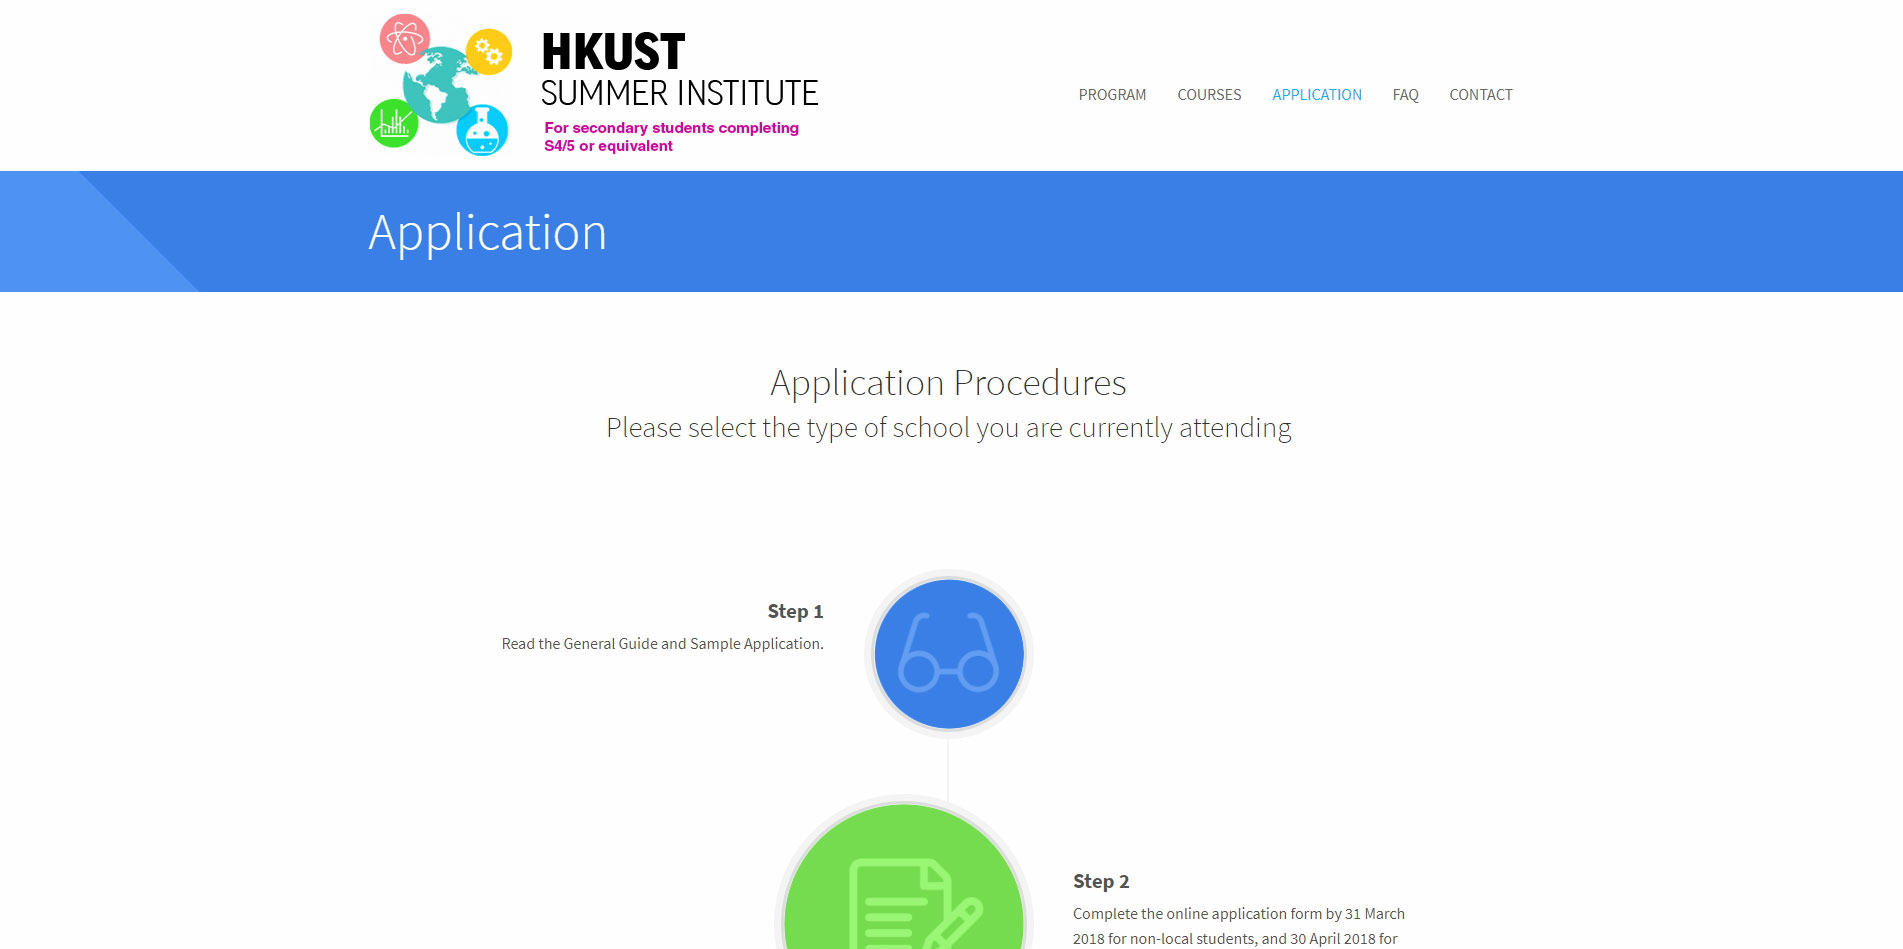 HKUST Summer Institute Procedure